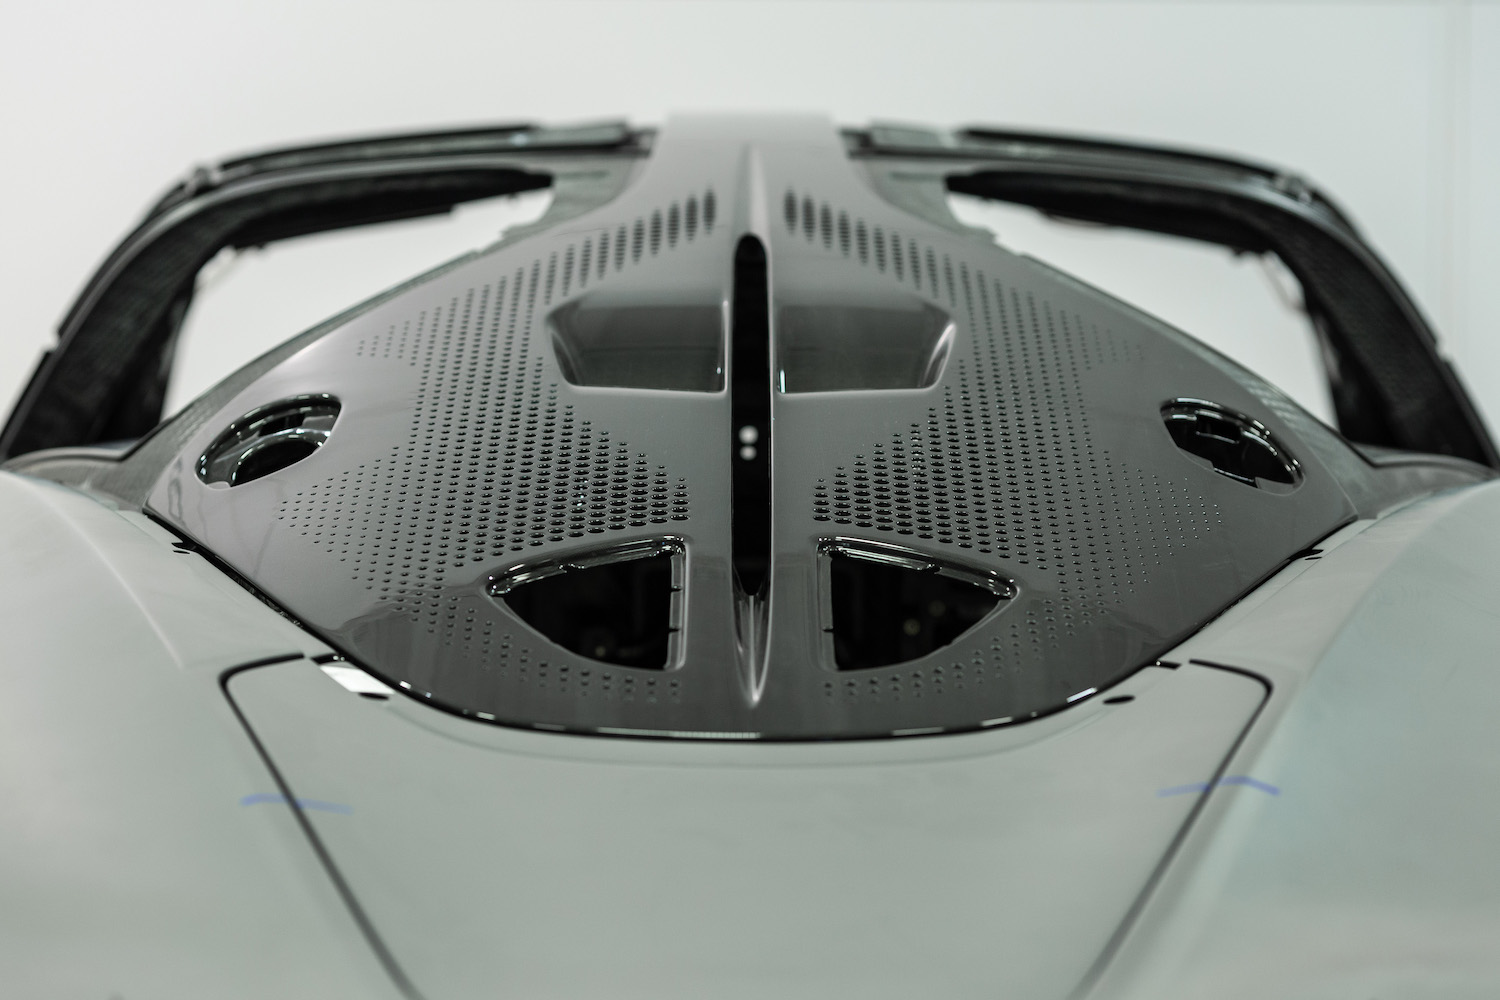 rear aerodynamic details